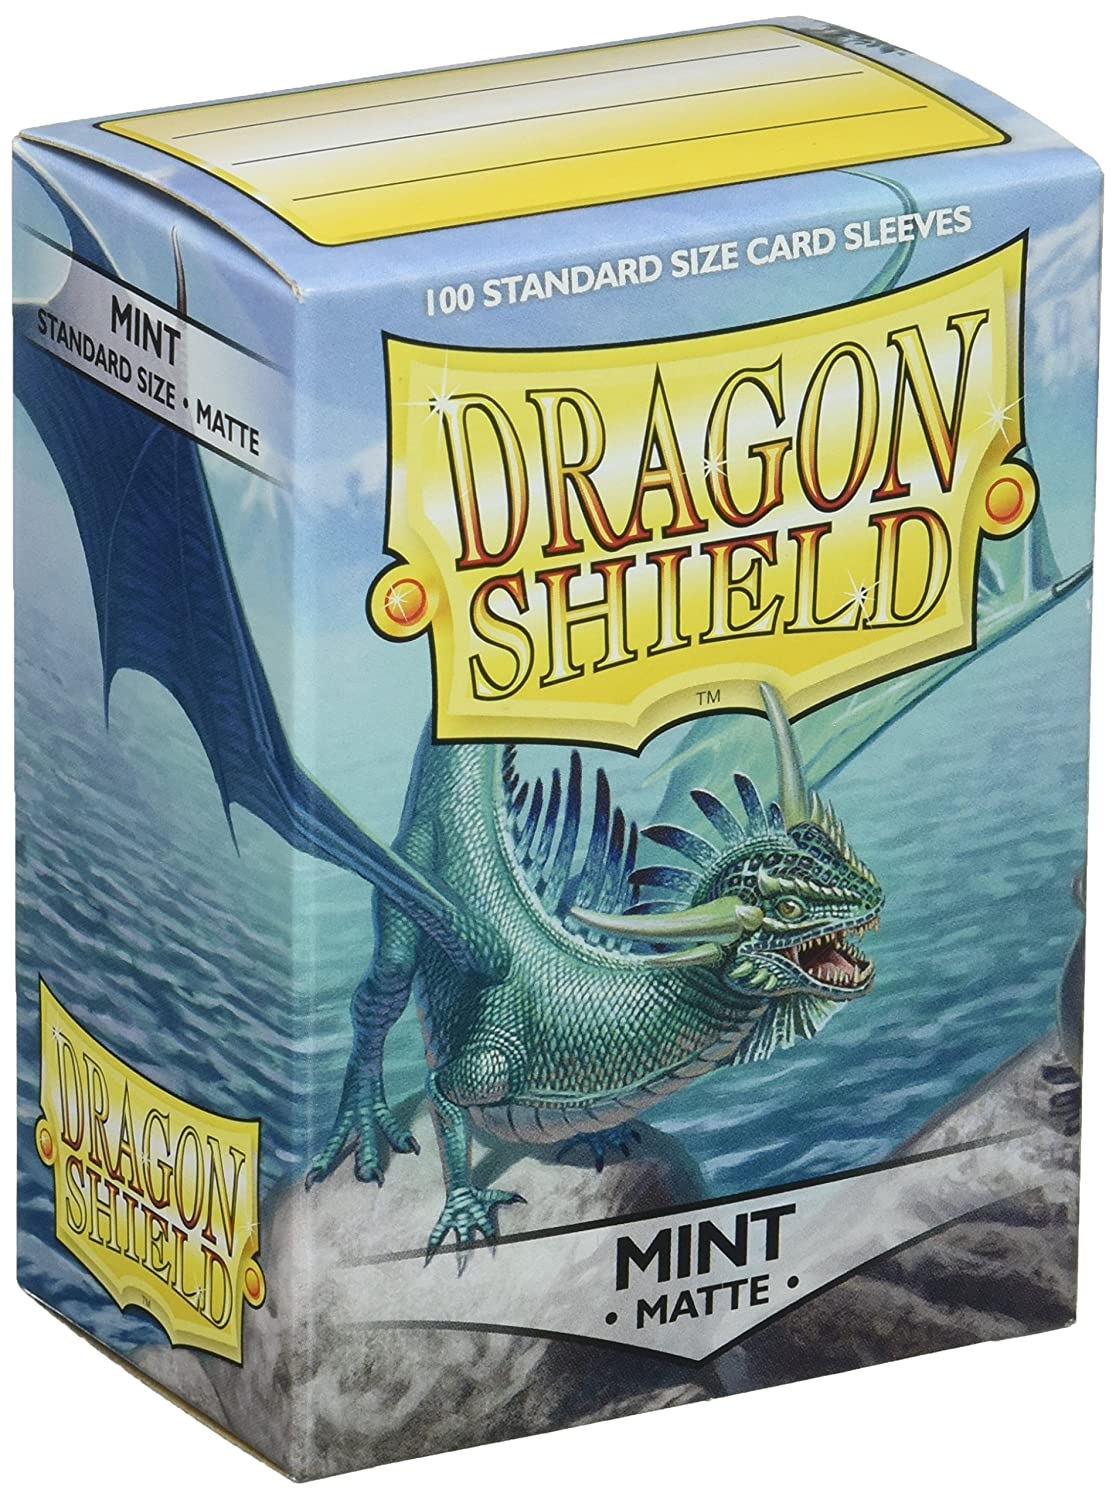 Dragon Shield Deck Protective Sleeves for Gaming Cards, Standard Size (100 sleeves), Matte Mint - AT-11025